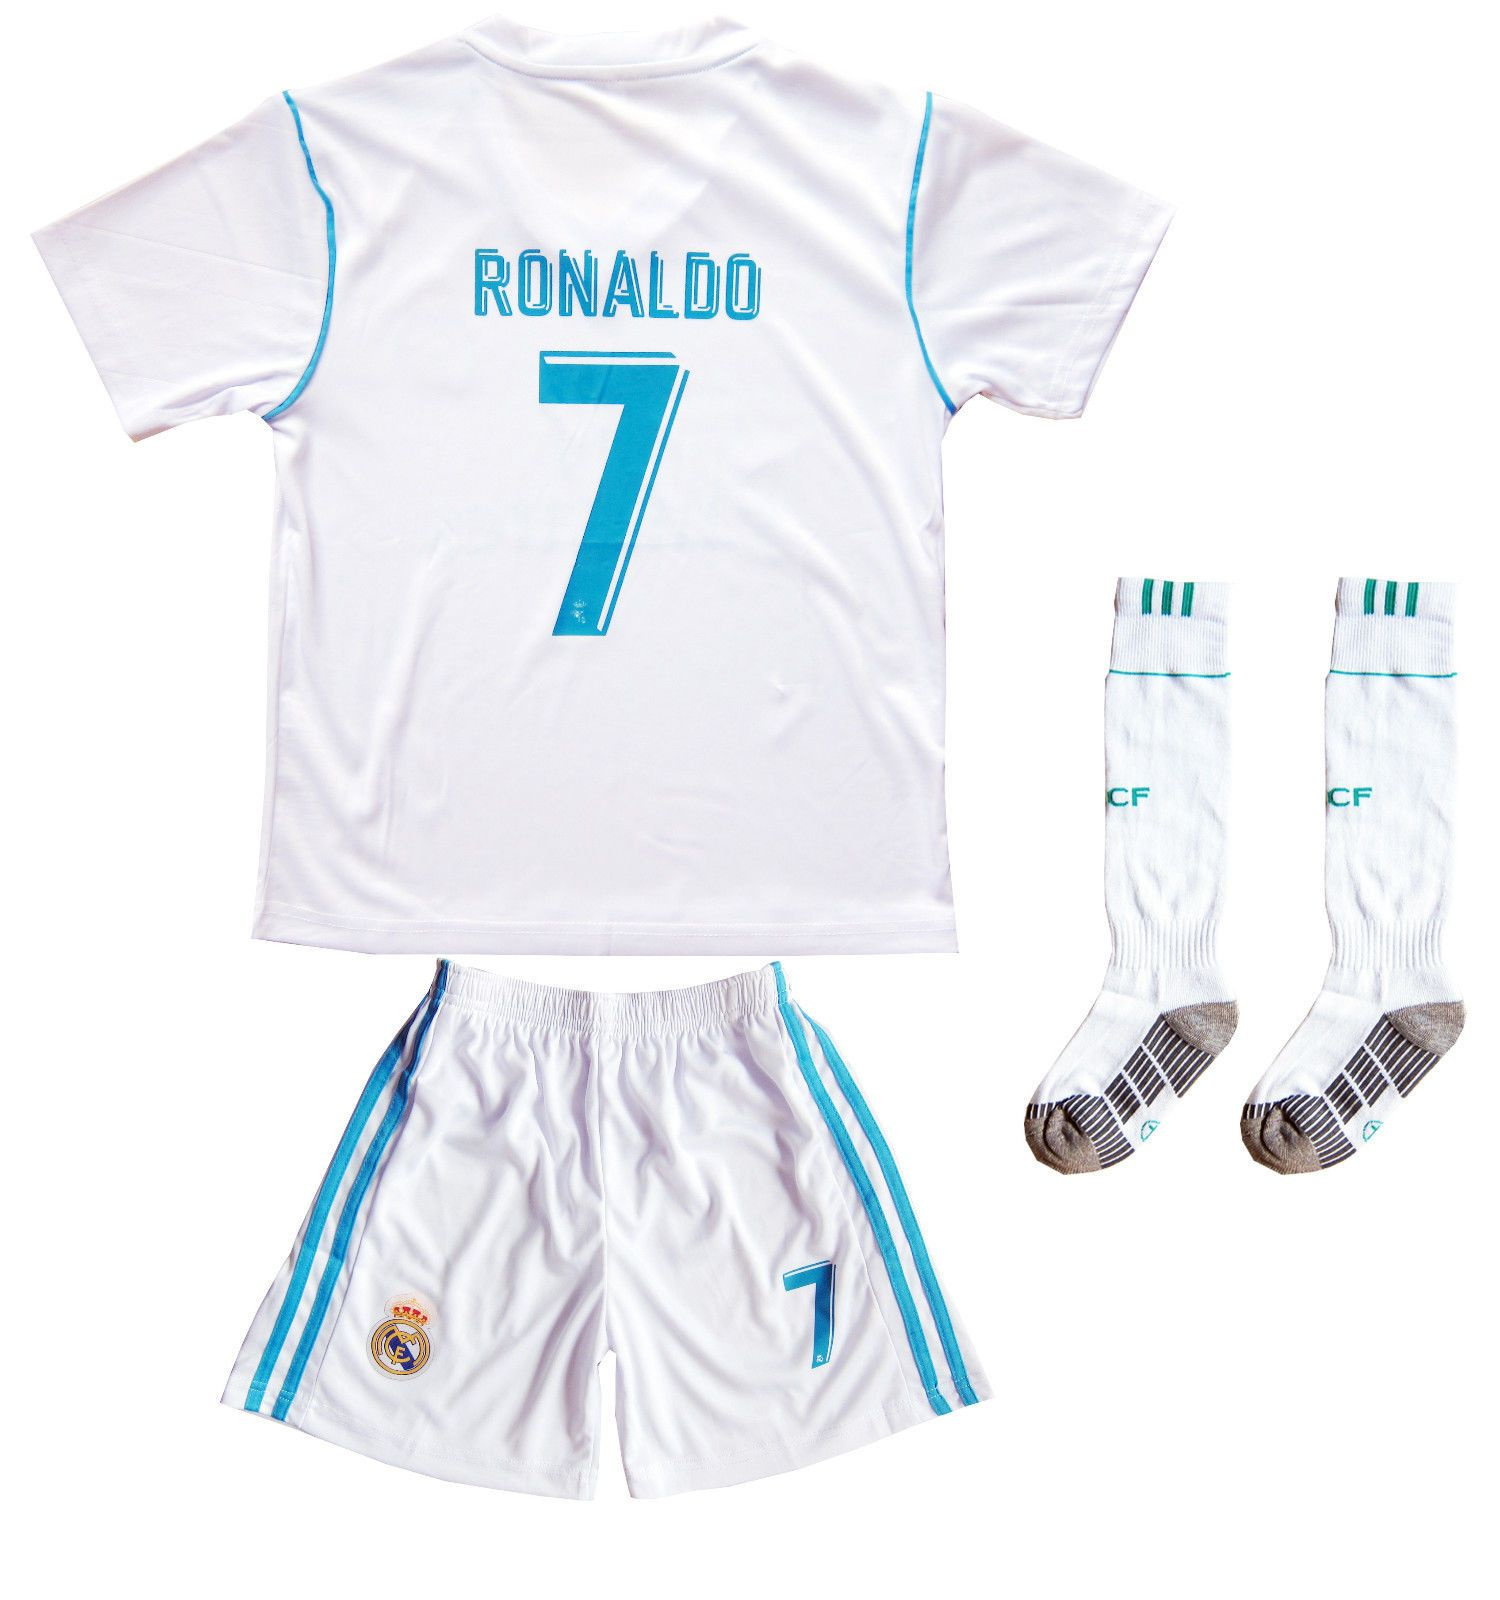 f53884f4807 Real Madrid Ronaldo  7 Home White Kids Soccer Jersey   Shorts Youth Sizes